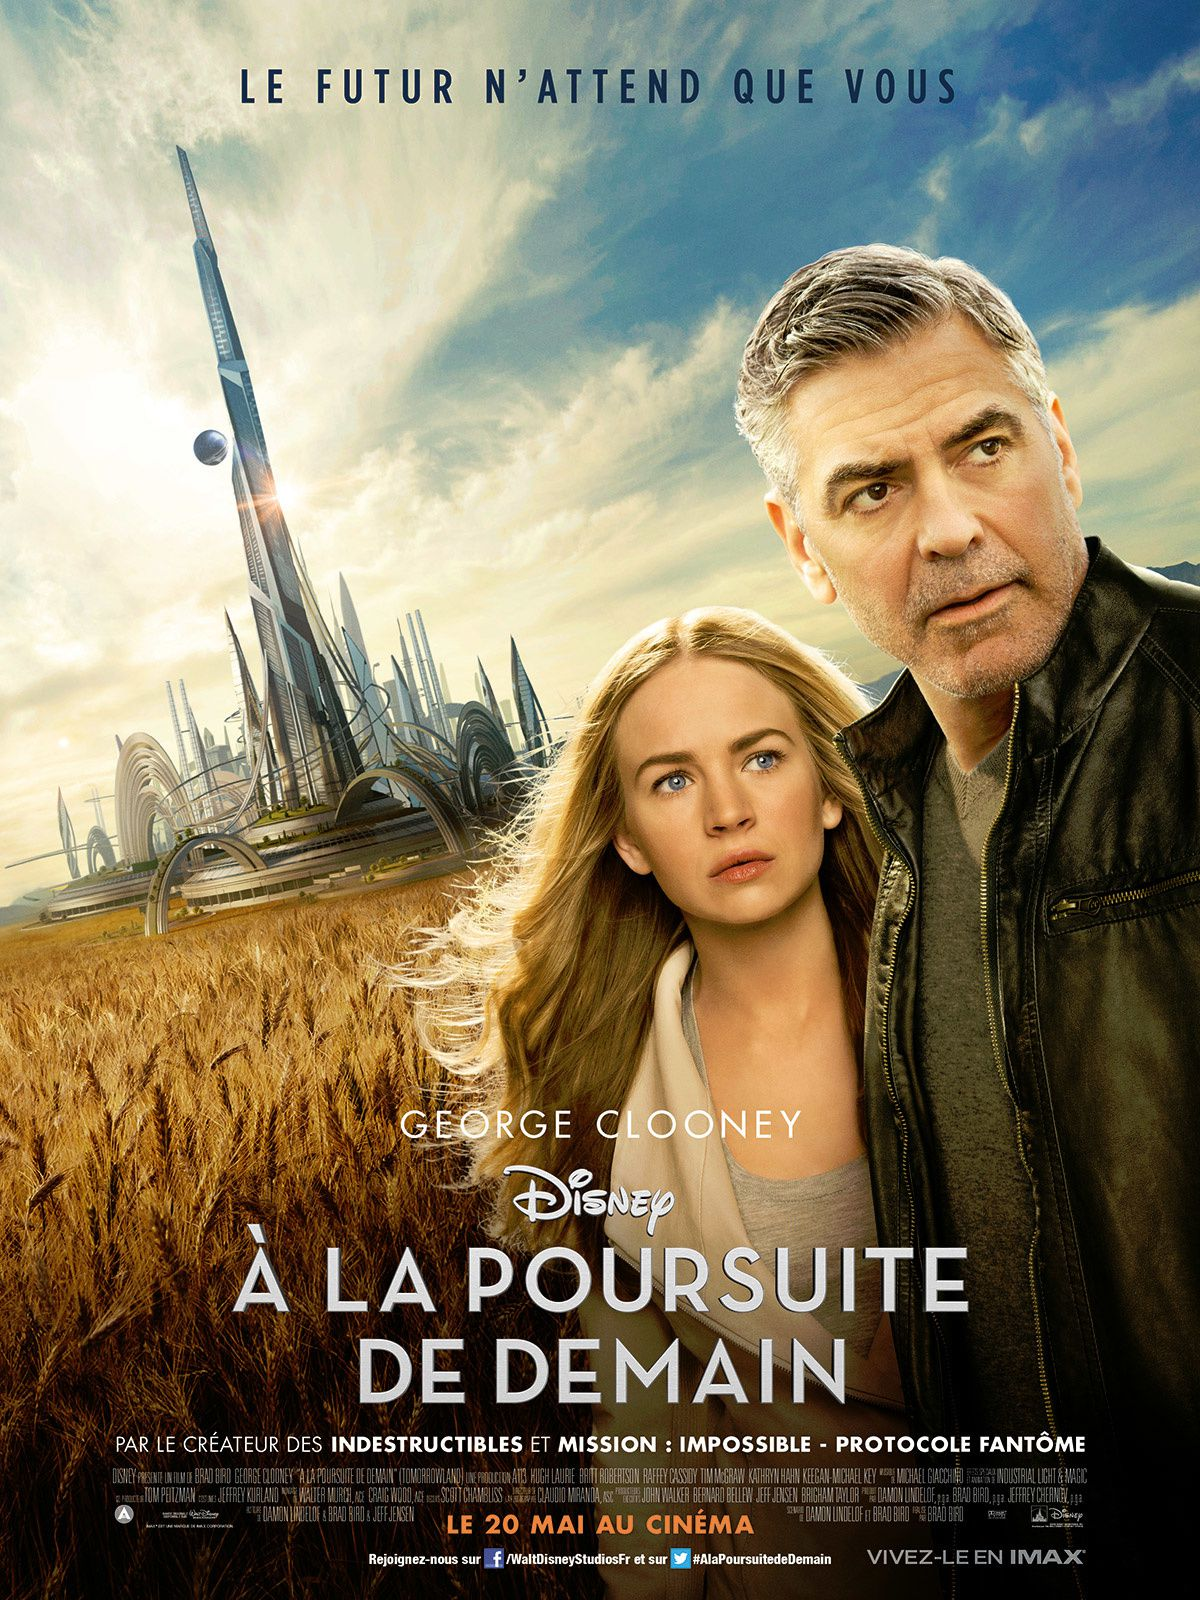 A la poursuite de demain - Brad Bird